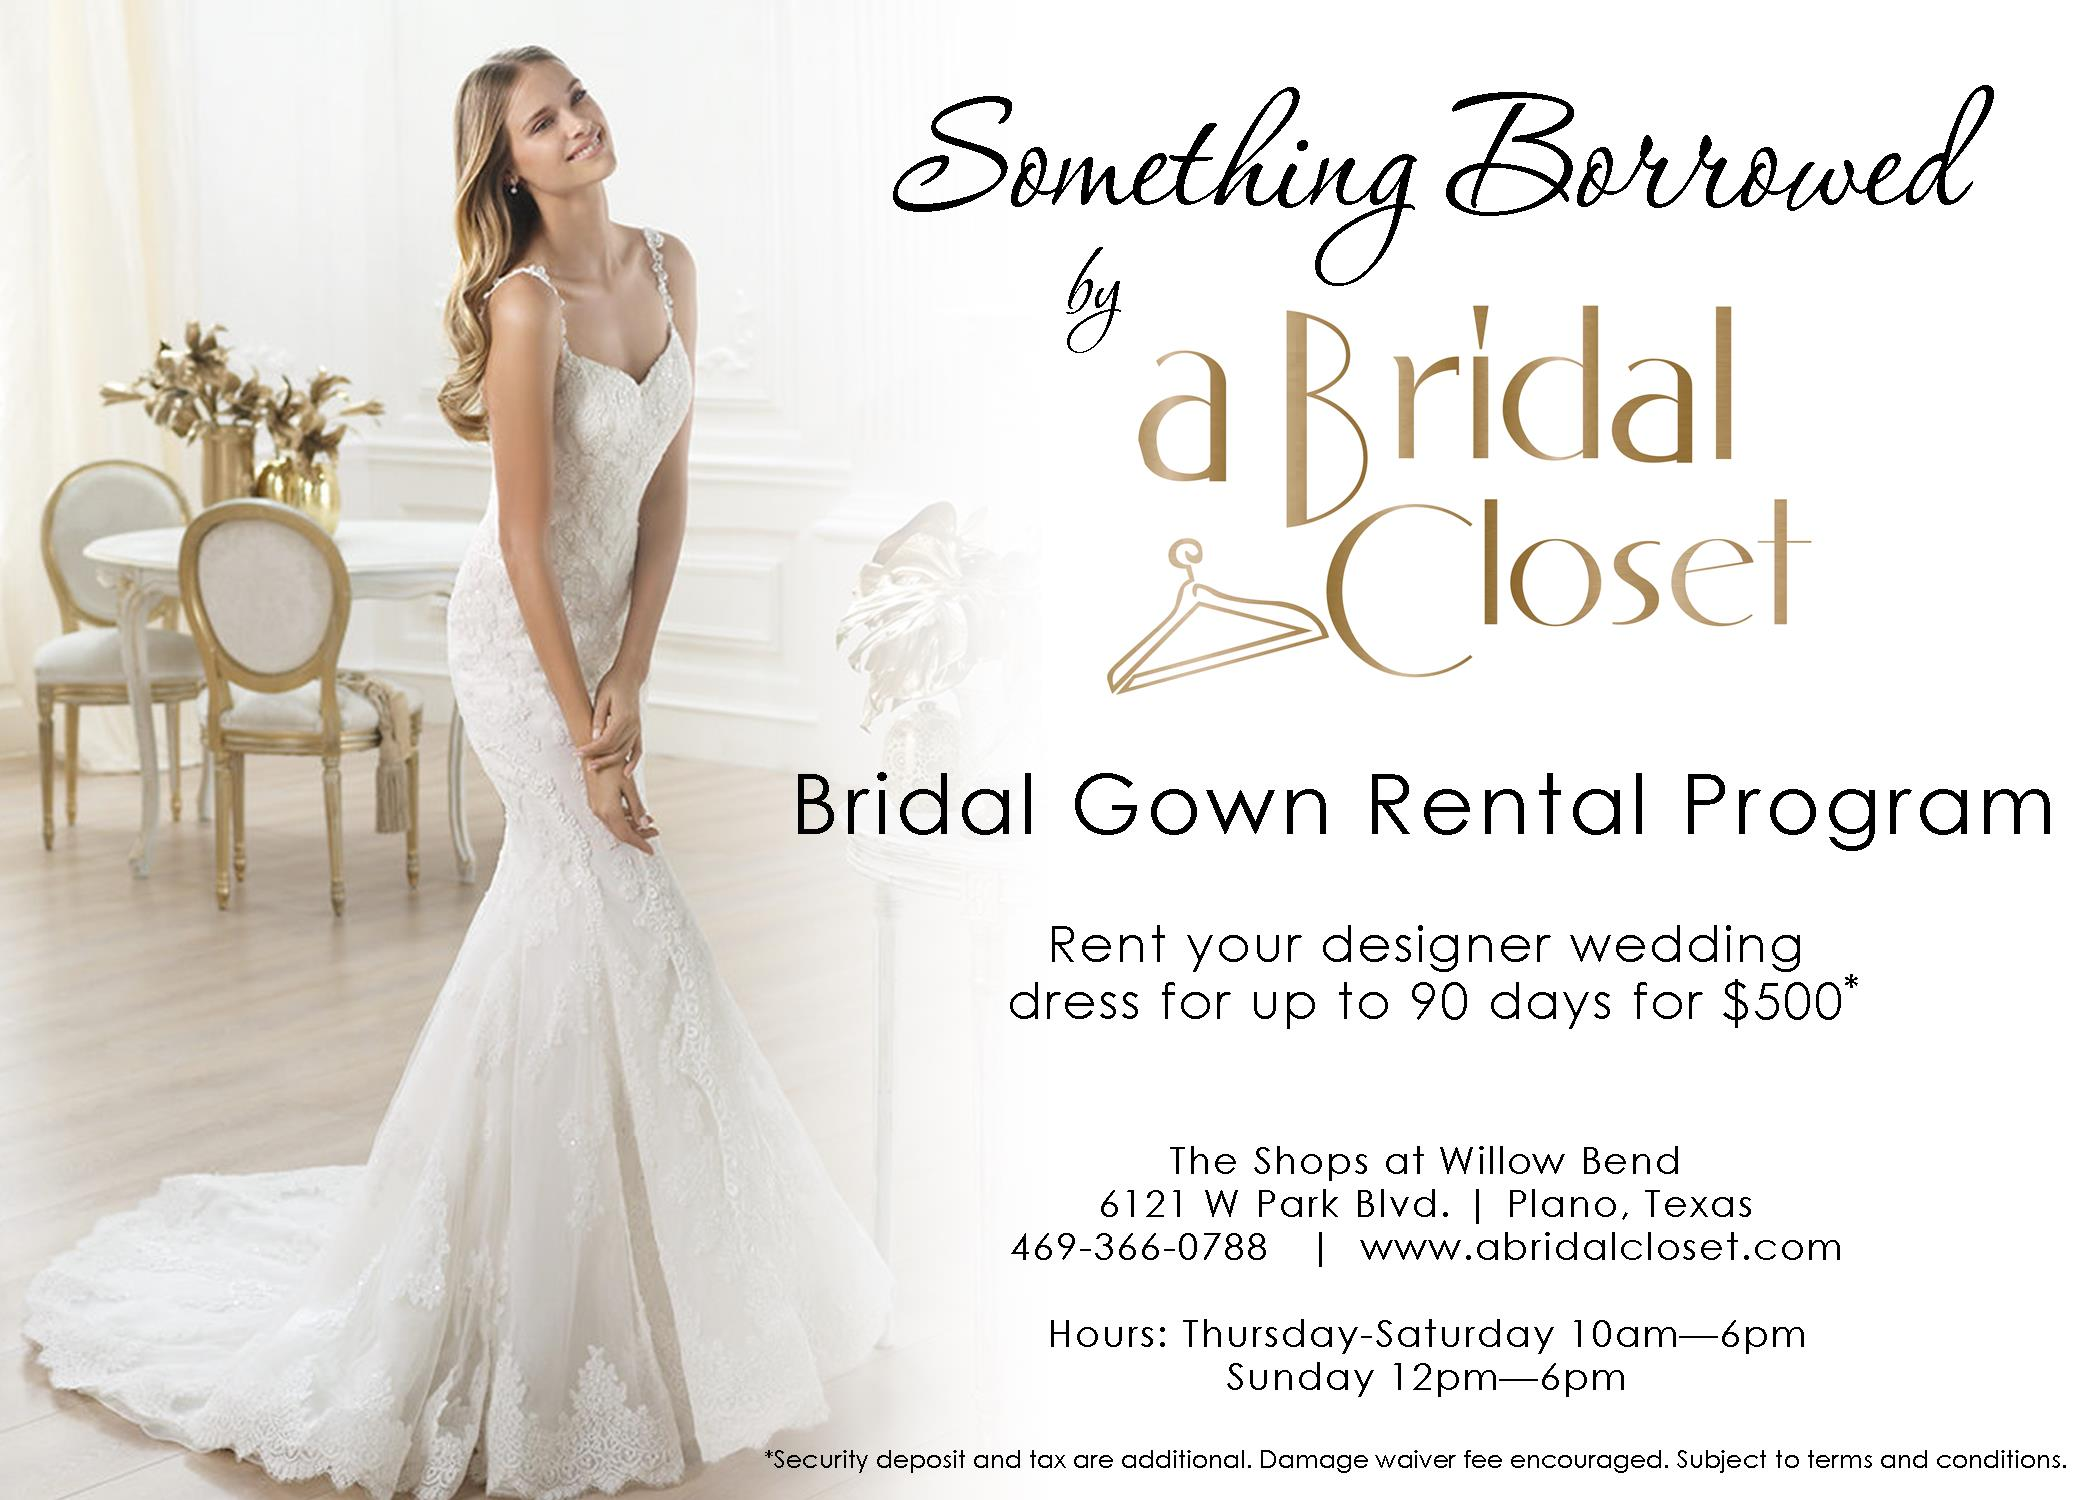 bridal closet renting wedding dresses CLICK HERE TO LEARN MORE ABOUT OUR BRIDAL GOWN RENTAL PROGRAM